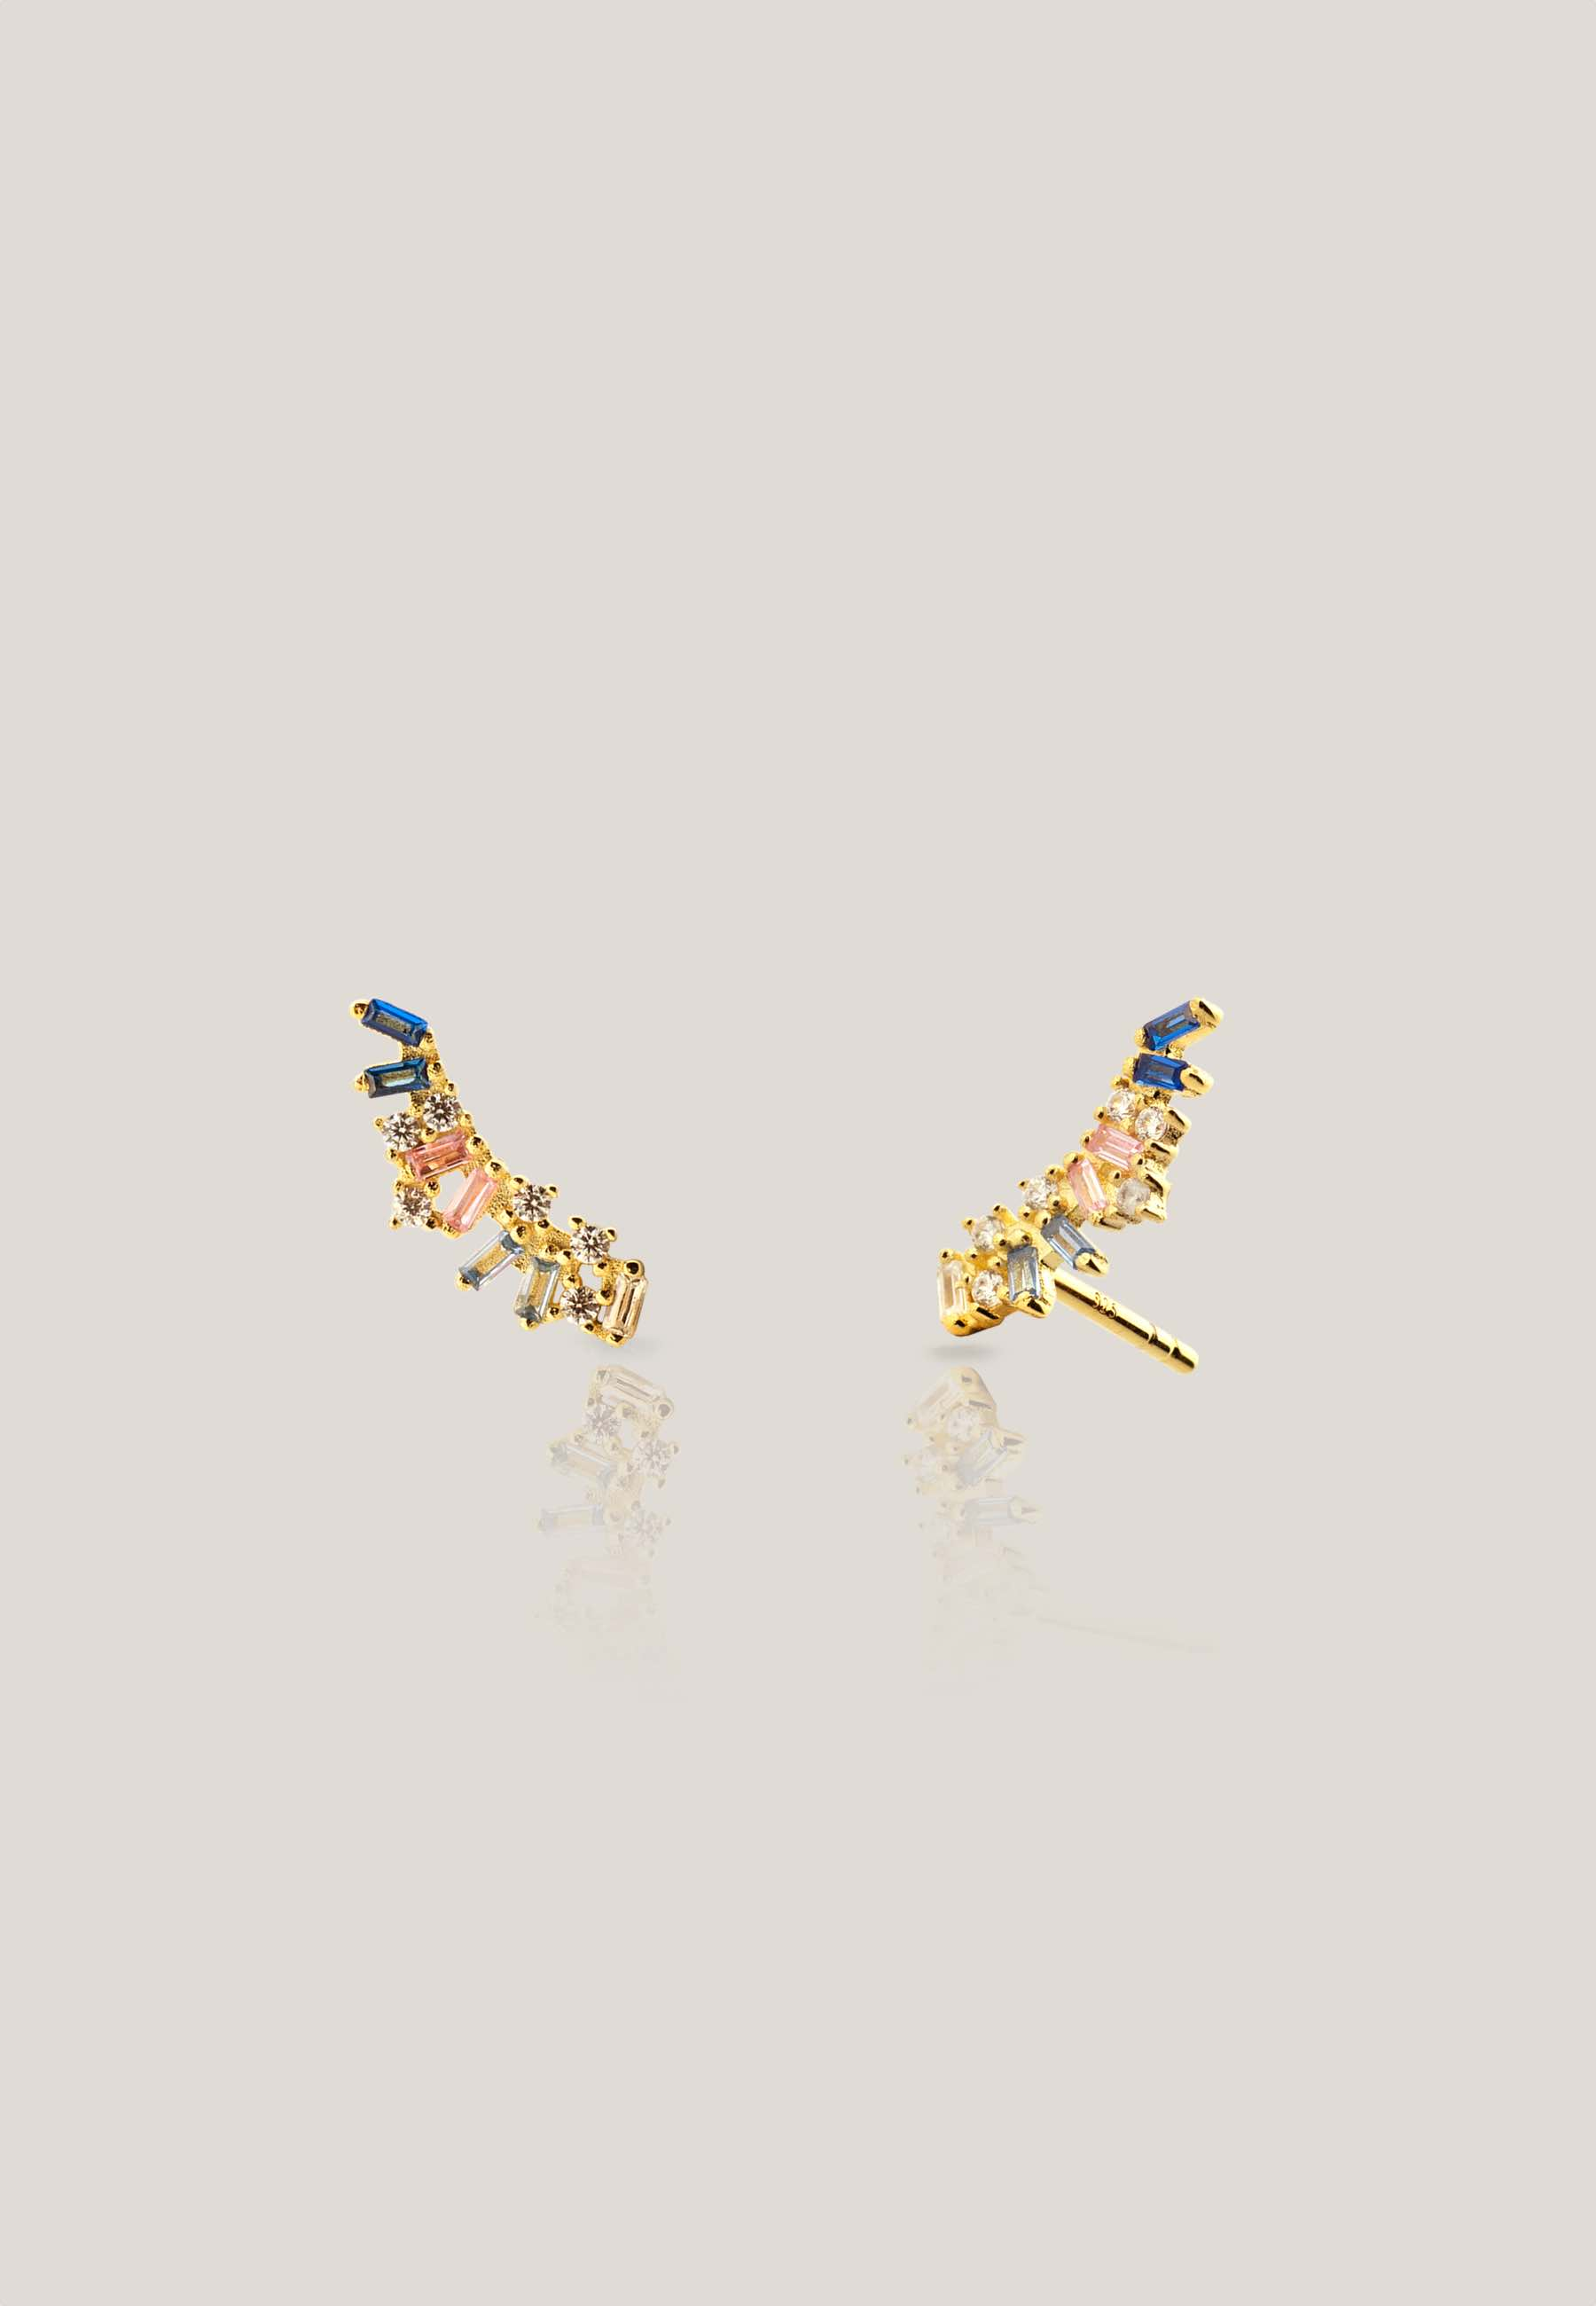 BLUE IRELAND gold earrings